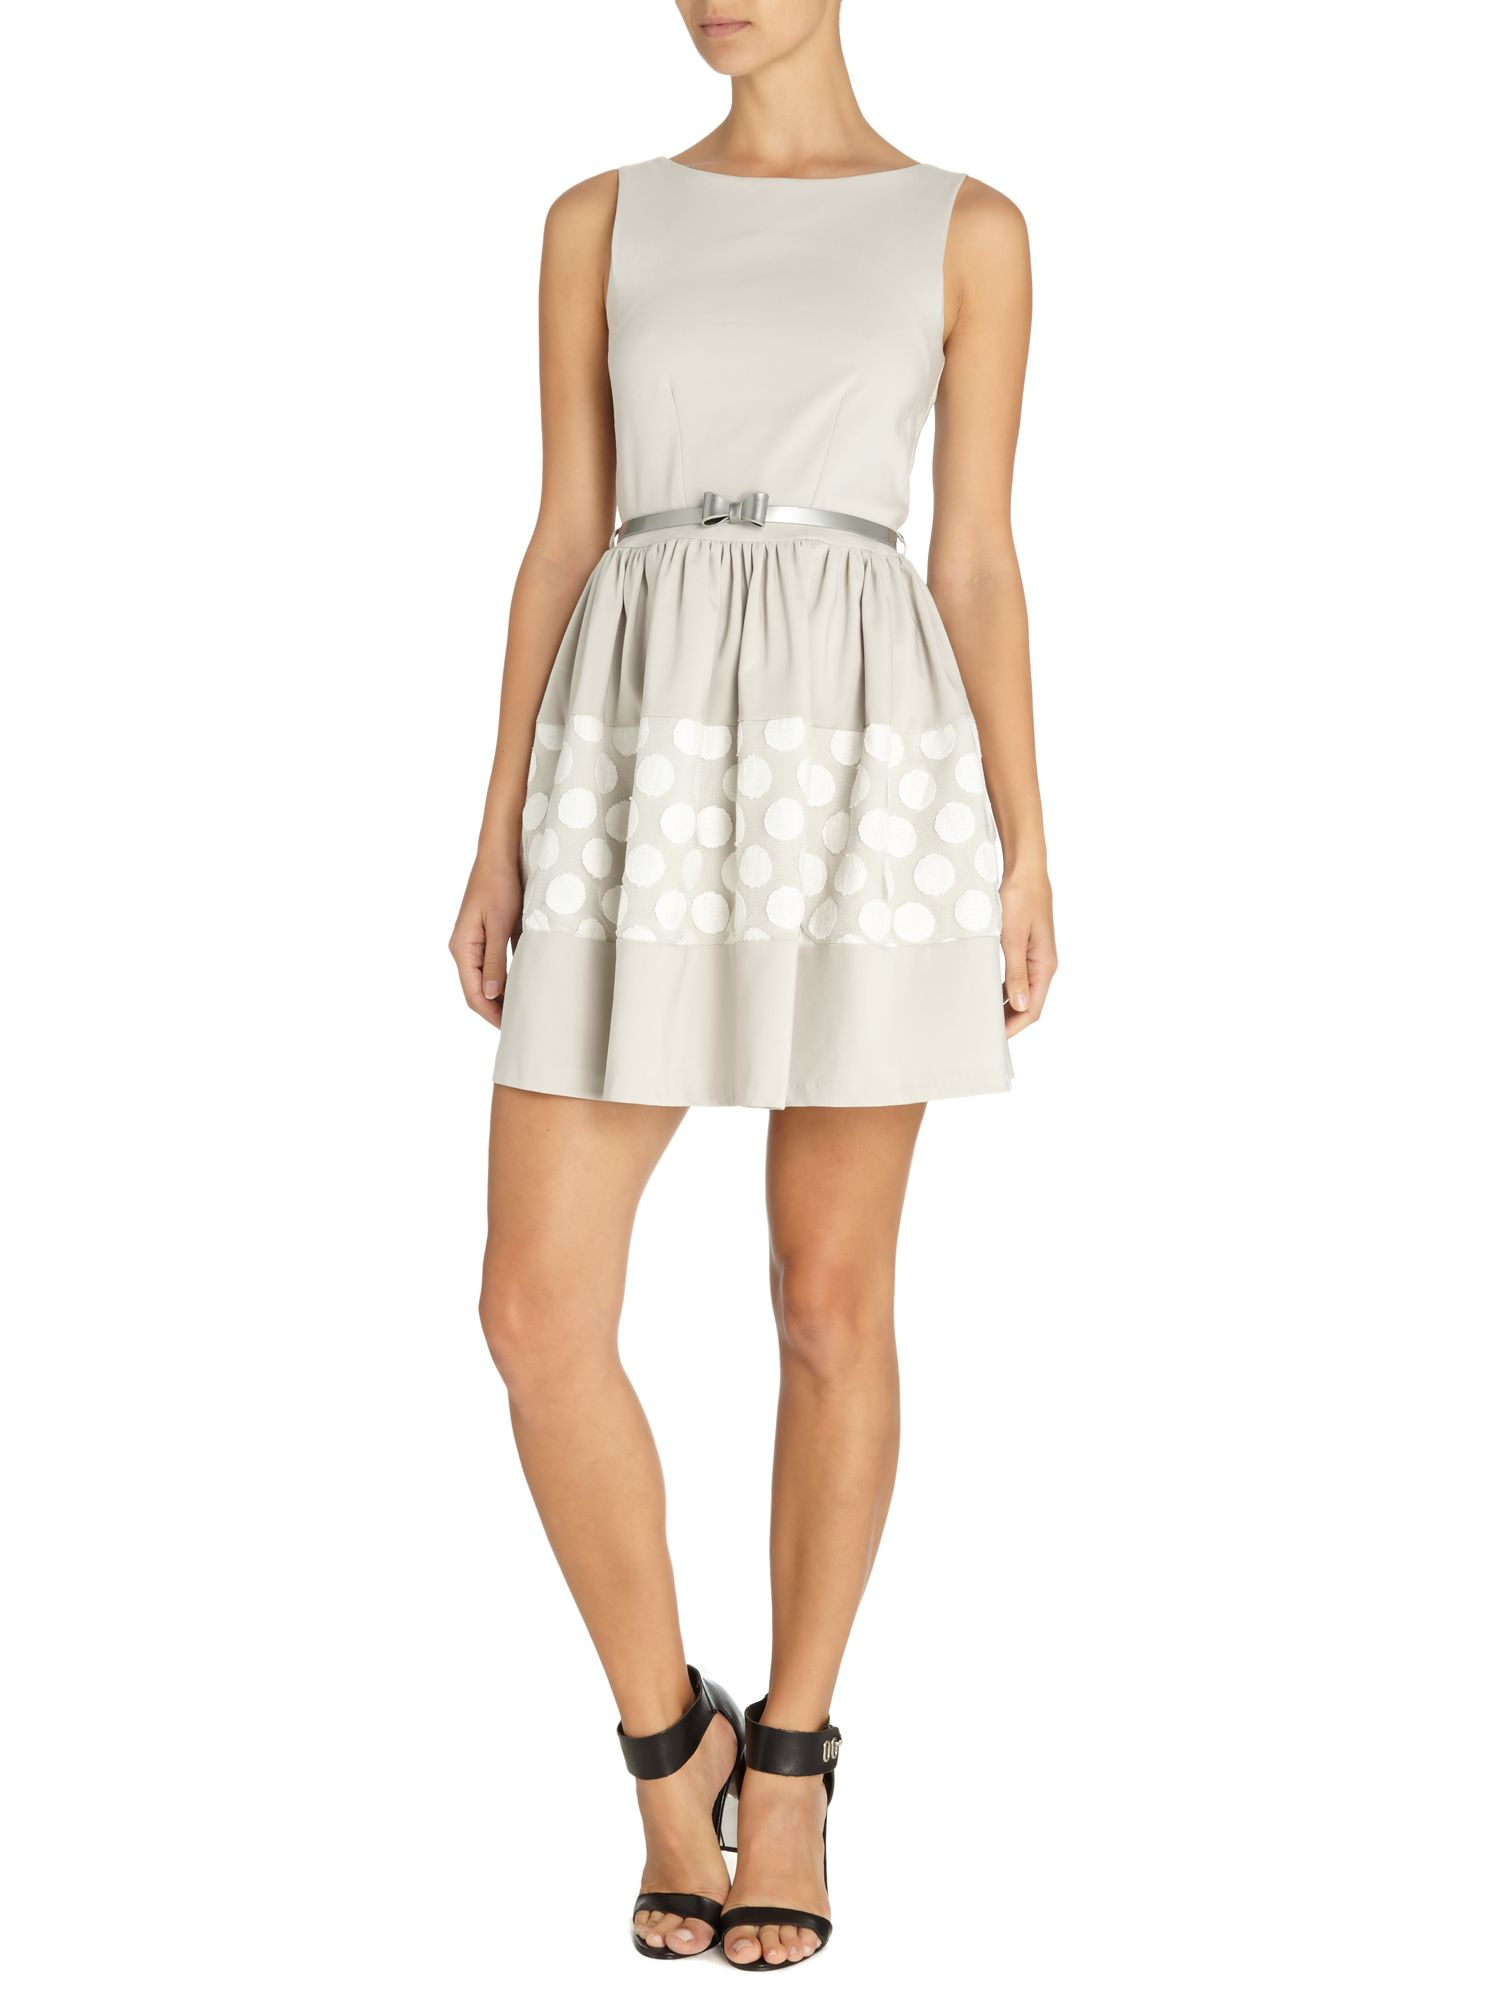 Big spot lace bow belt dress